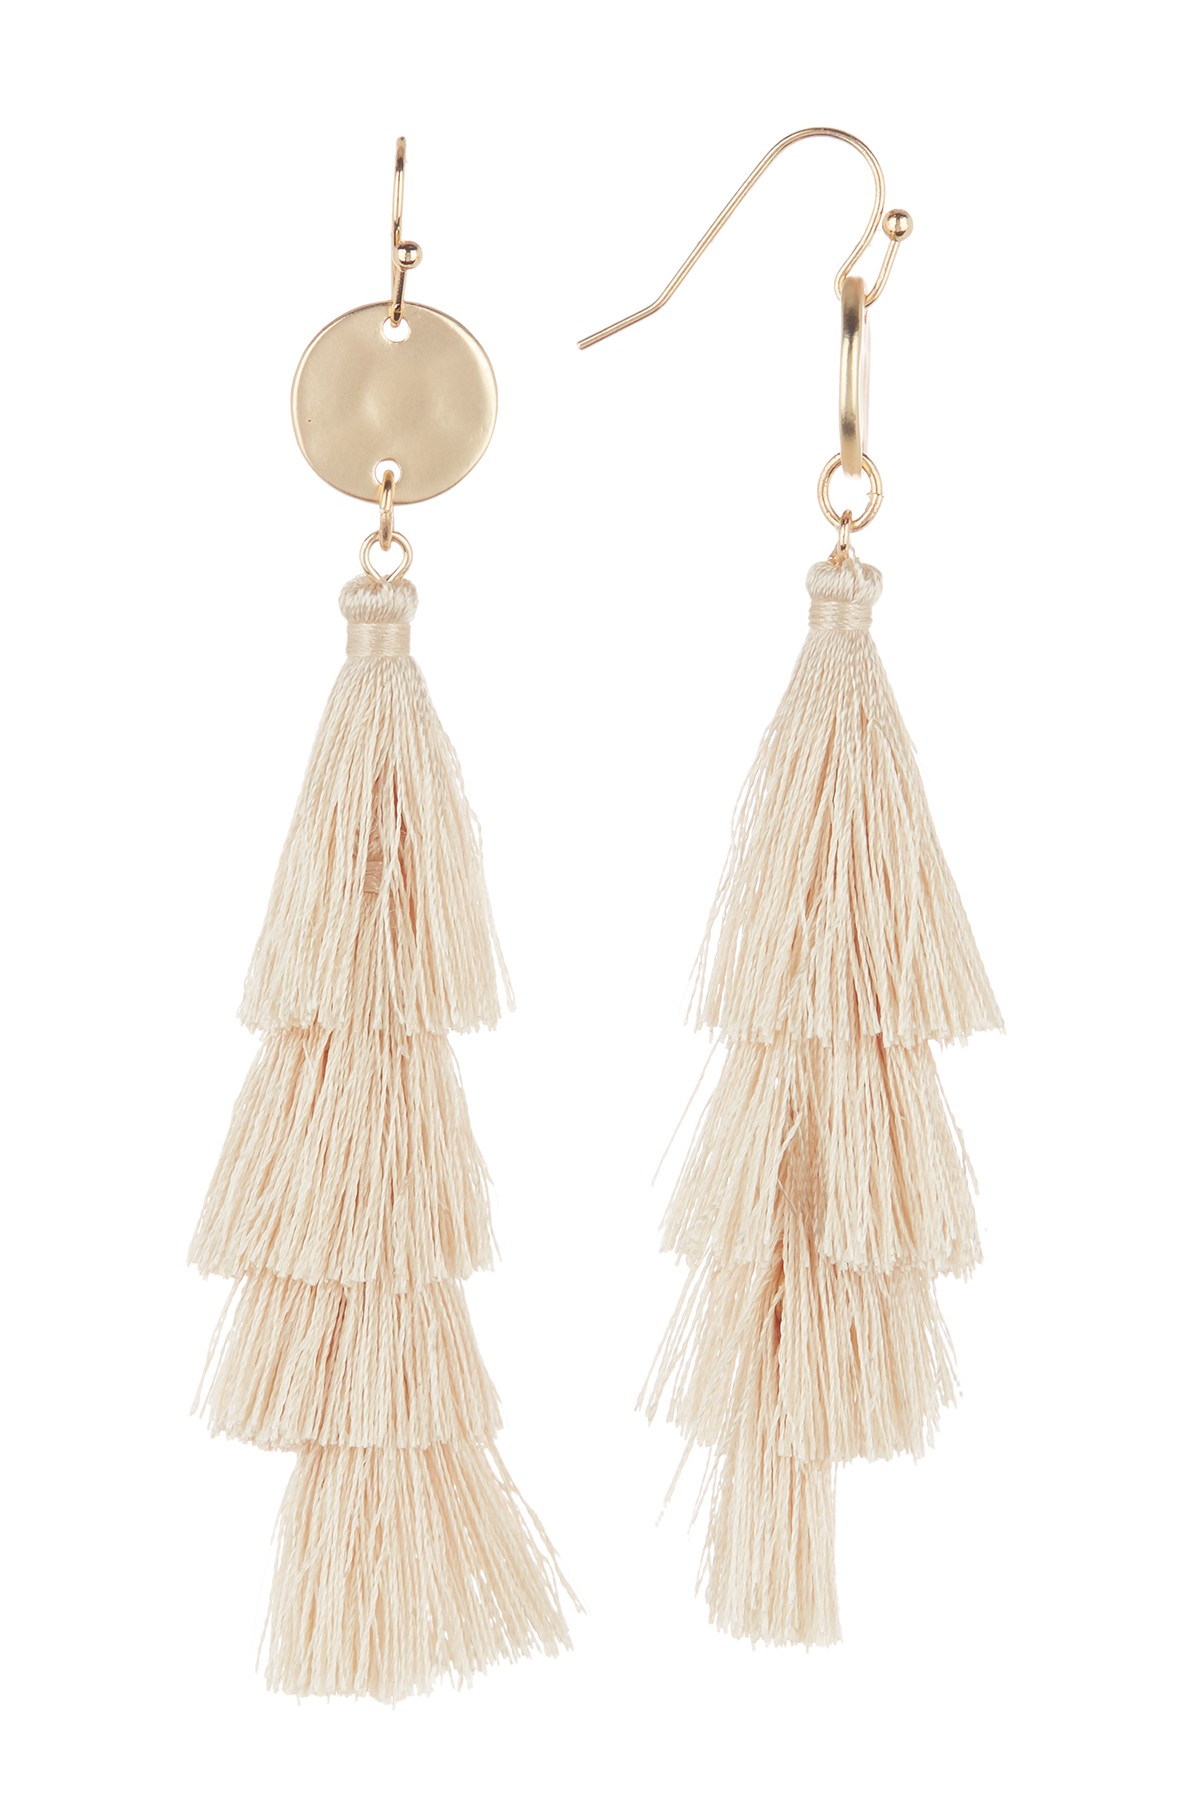 cream and gold colored tassel earrings